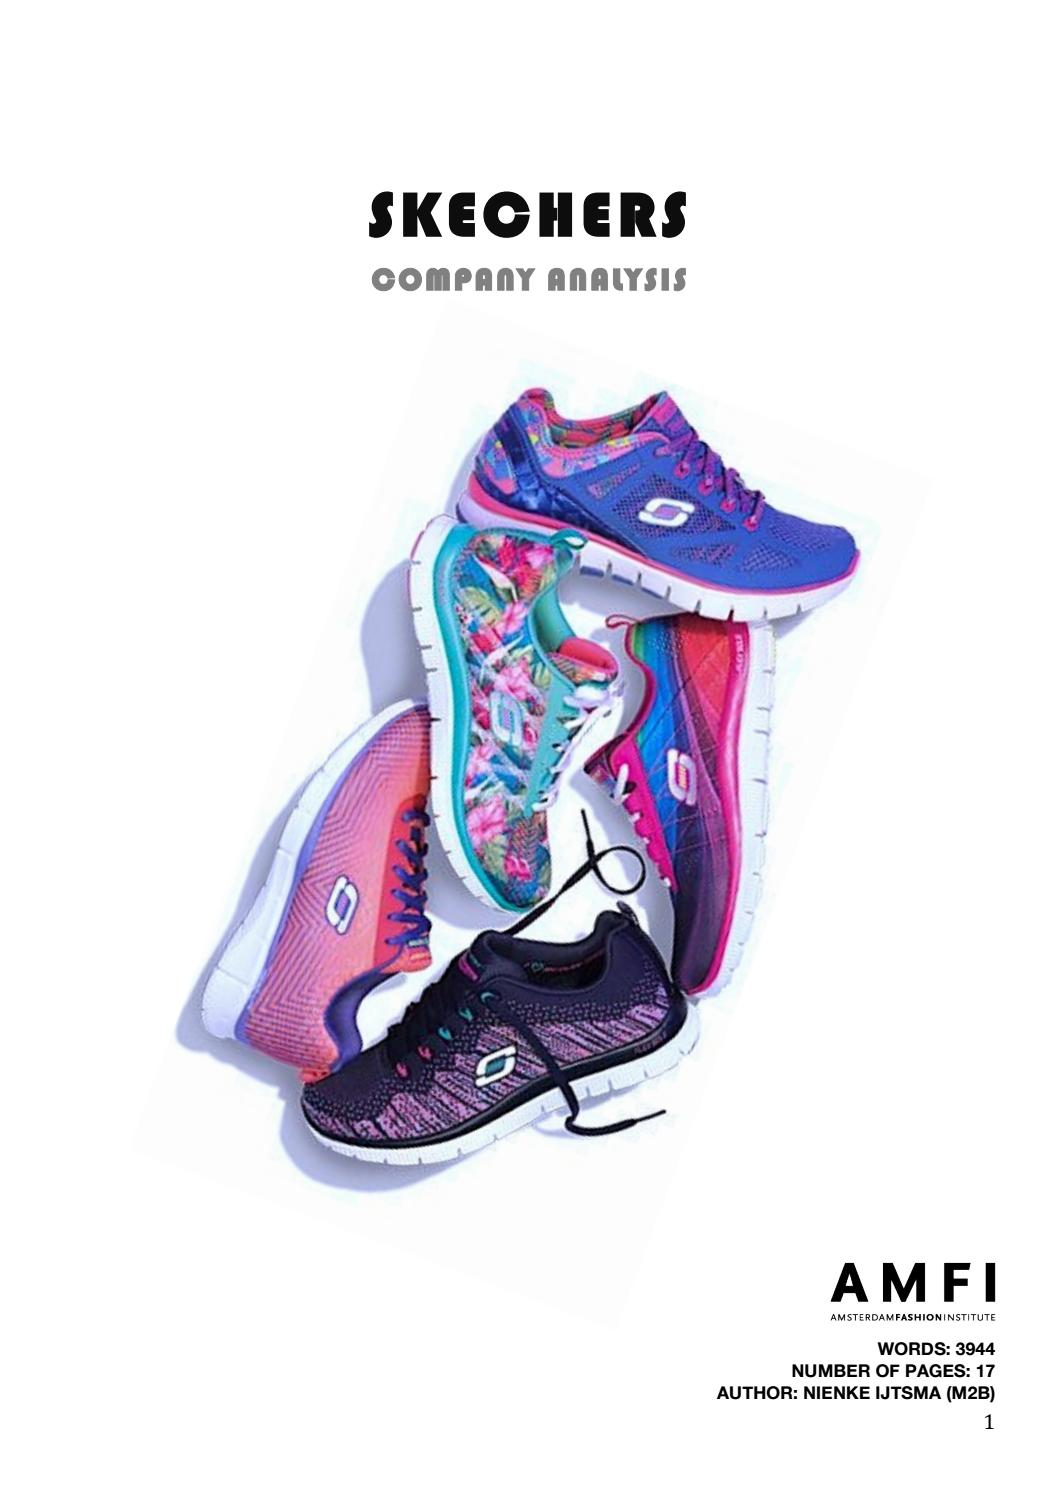 Skechers Company Analysis by